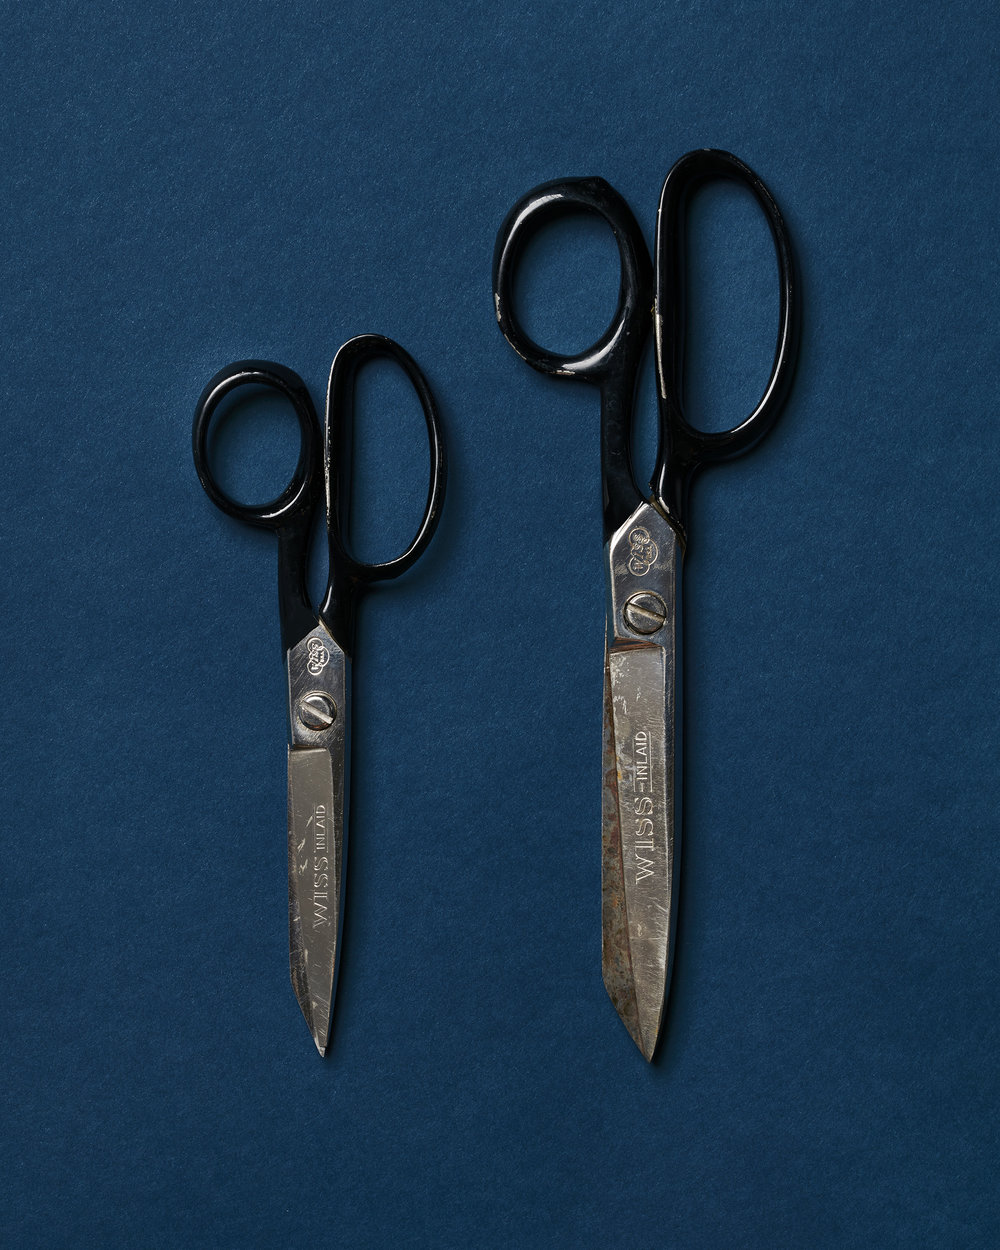 22_Grandparents_Scissors_retouched.jpg